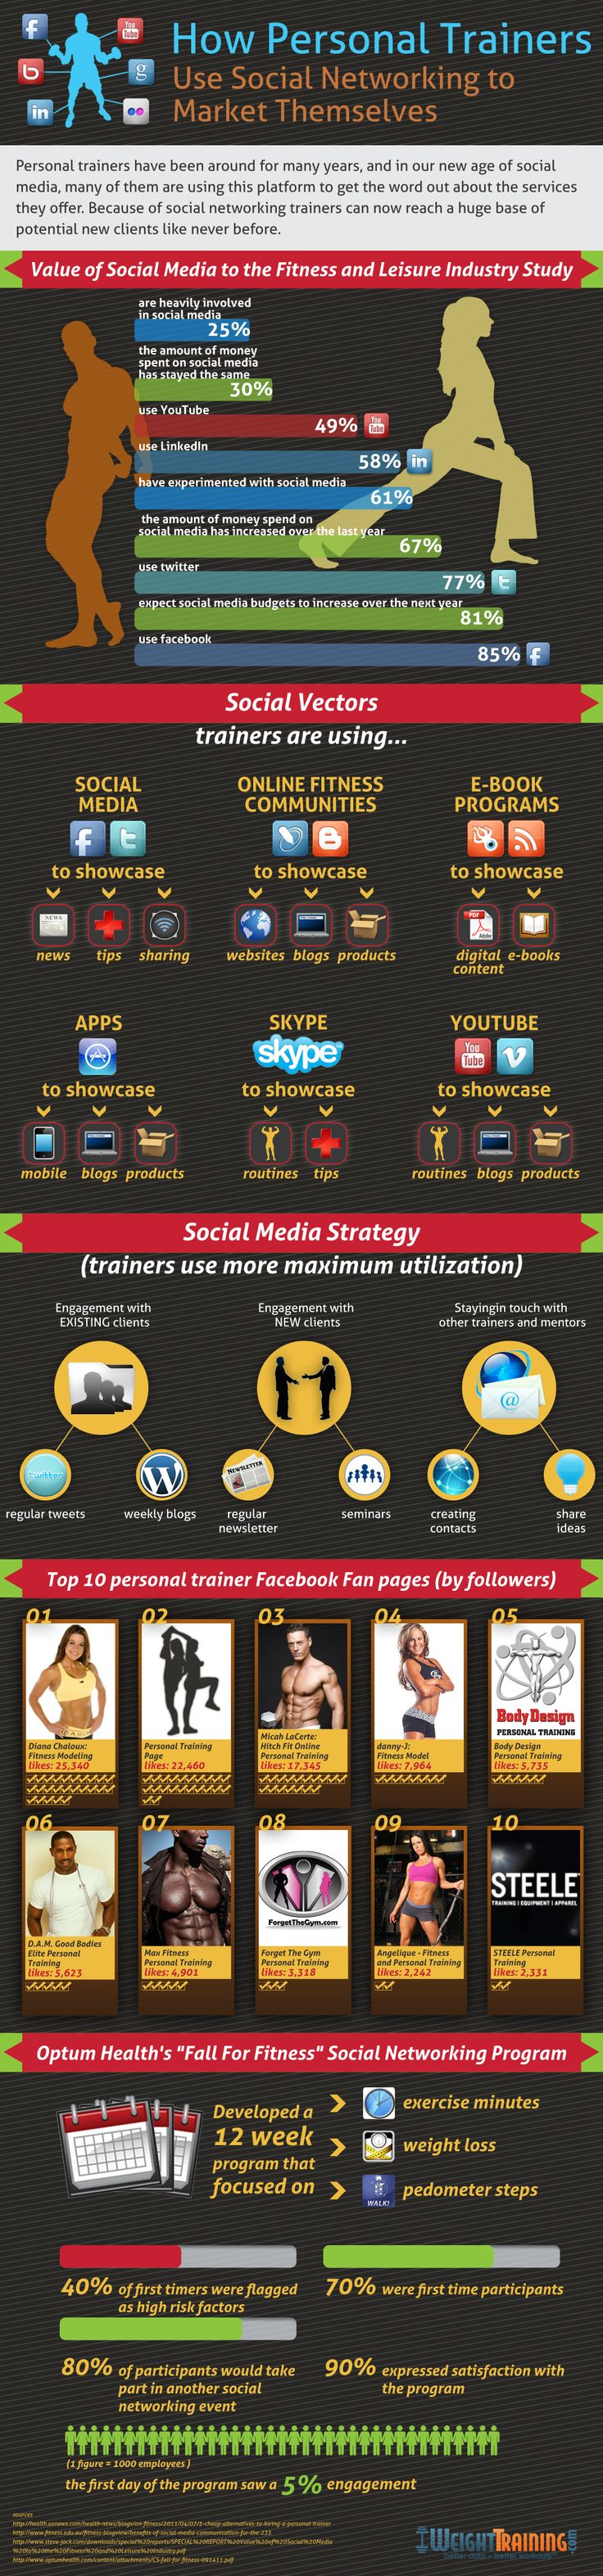 Personal Trainers and Social Media Marketing